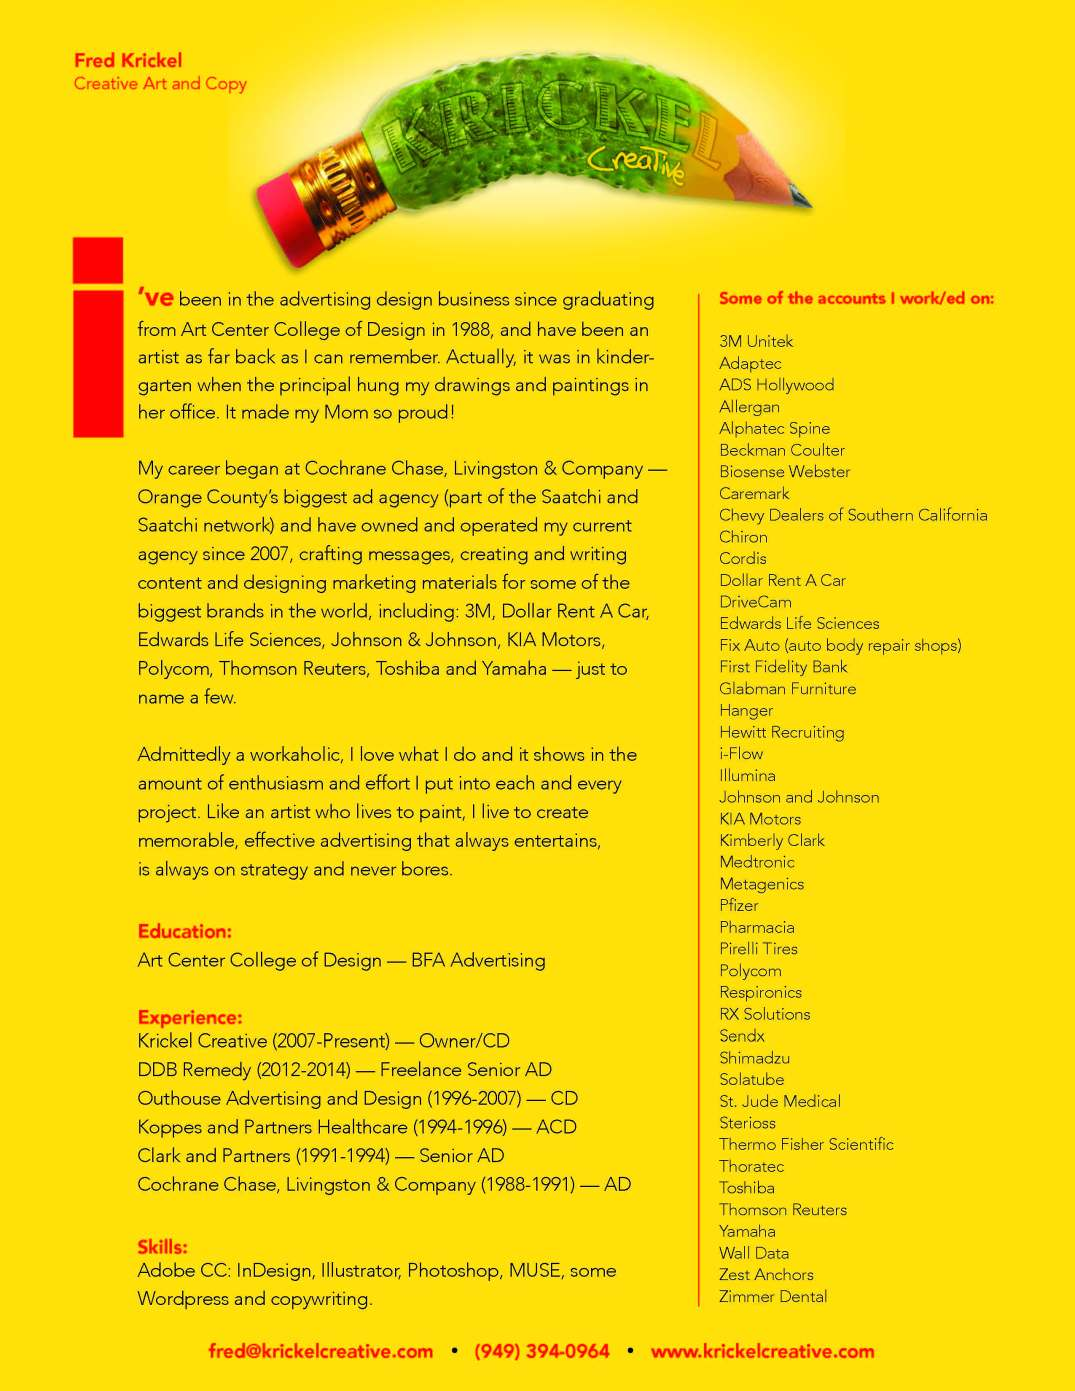 art director, art direction, creative direction, advertising, designer, art center college of design, photograhy supervision, print production, photoshop, InDesign, Illustrator, artist, freelance, contract, dependable, fresh thinking, experienced, affordable, copy writing, website design, employment, medical, art, healthcare, specialized, fun, team player, enjoyable, southern california, Carlsbad artist, San Diego commercial artist